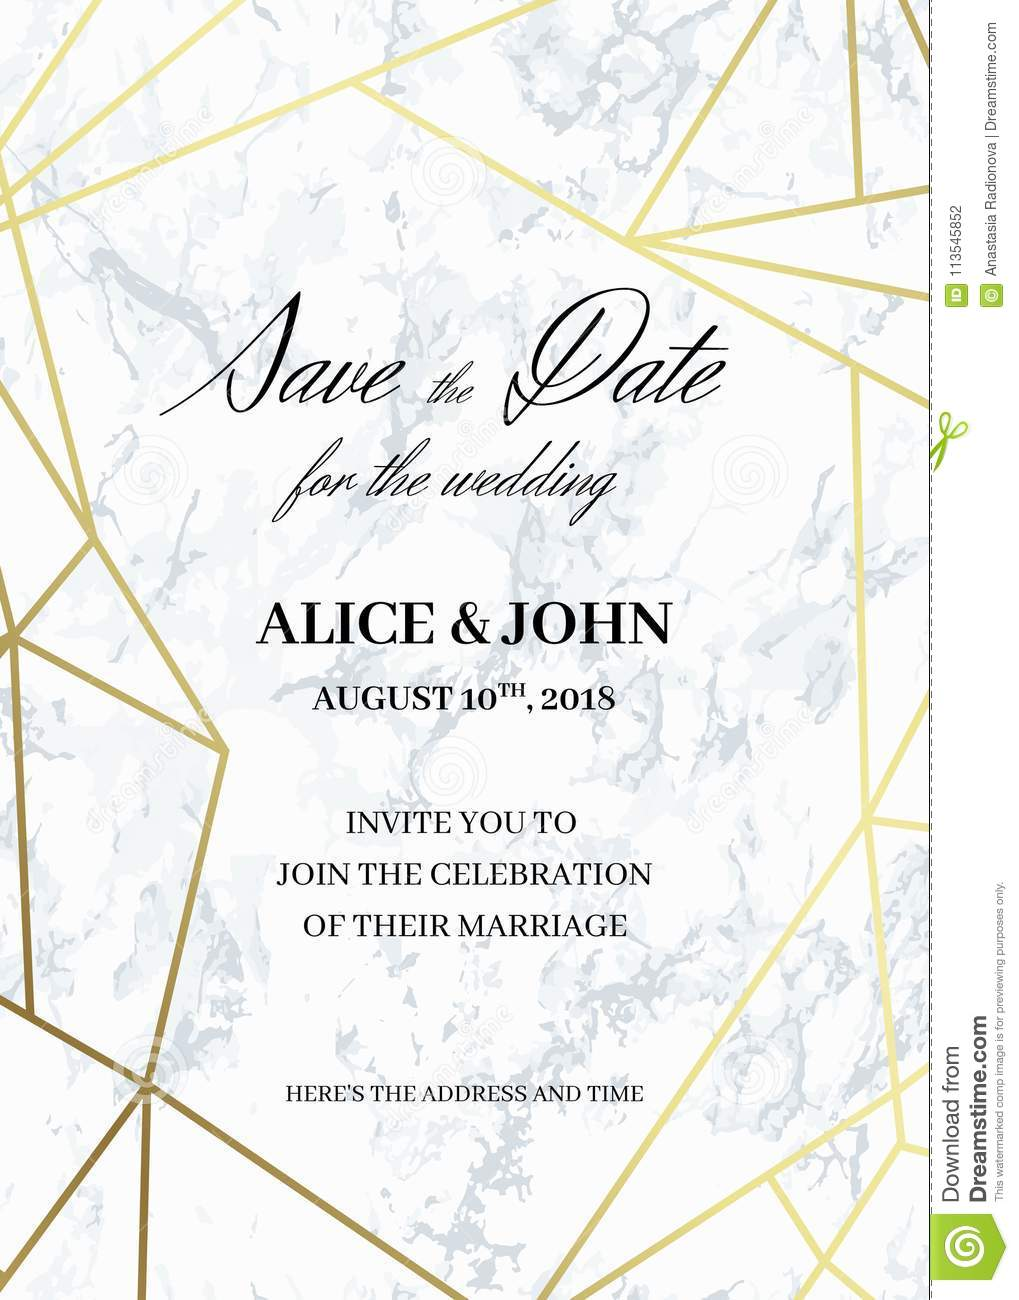 save the date card template of geometric design stock vector